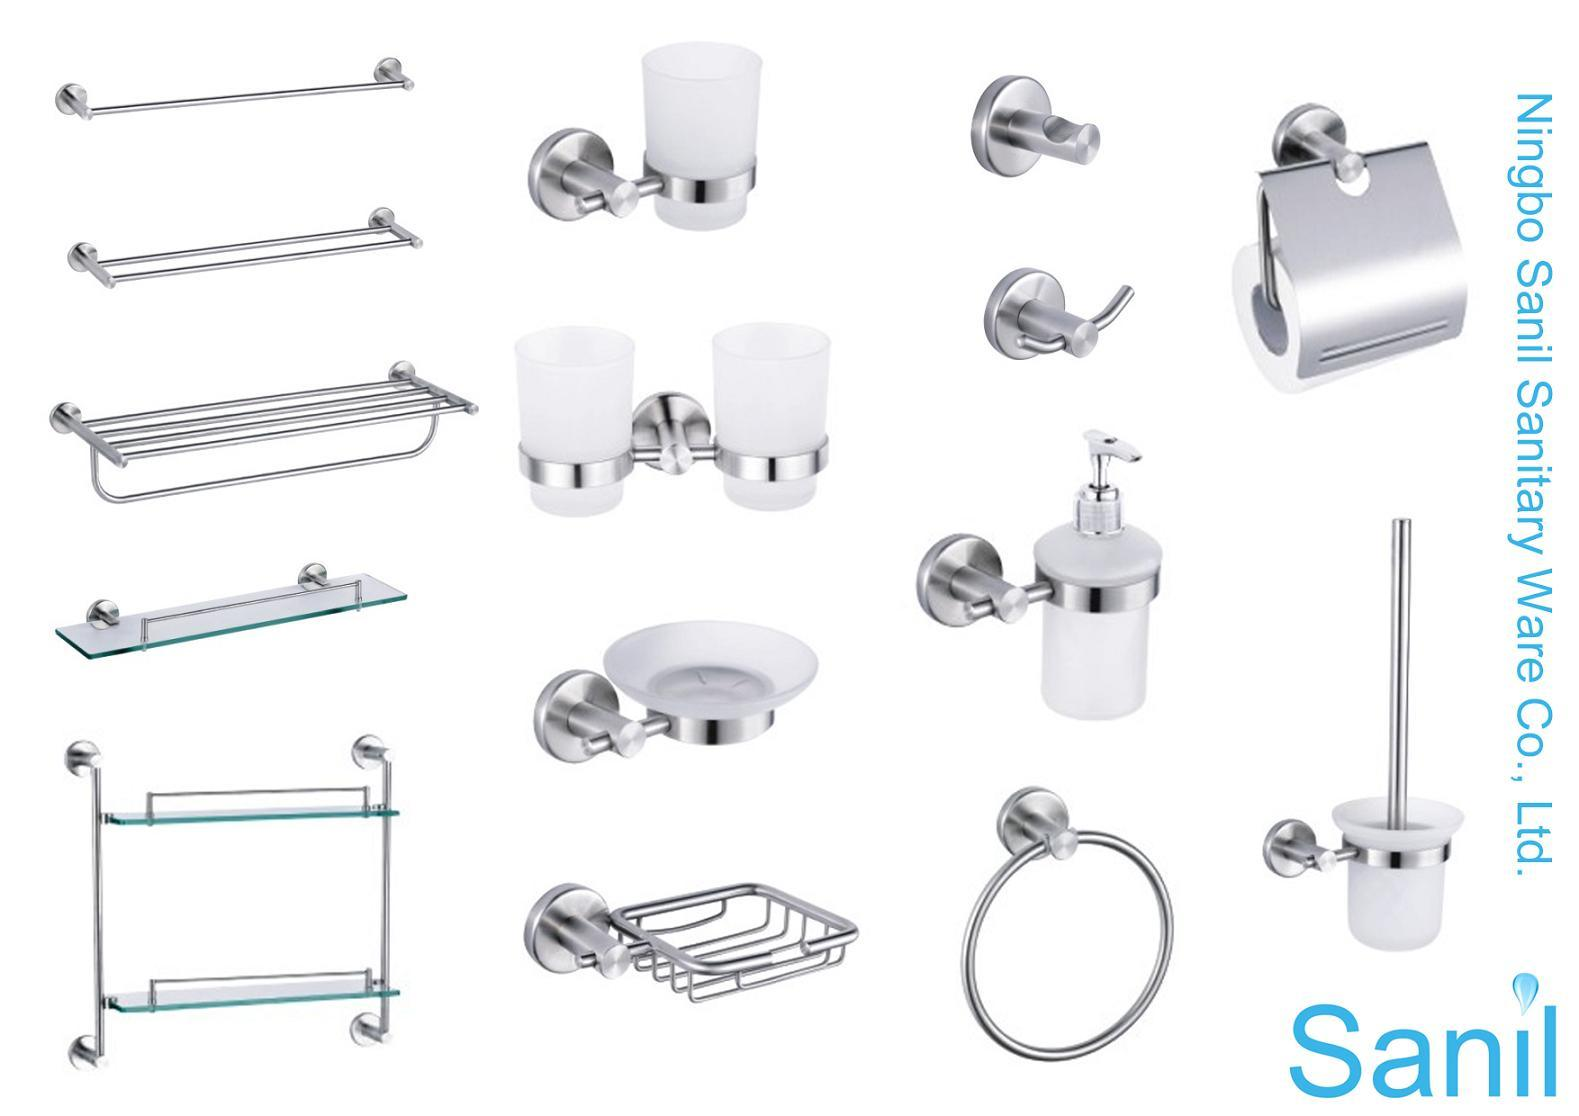 Bathroom Accessories Fittings bathroom fittings and accessories - ierie